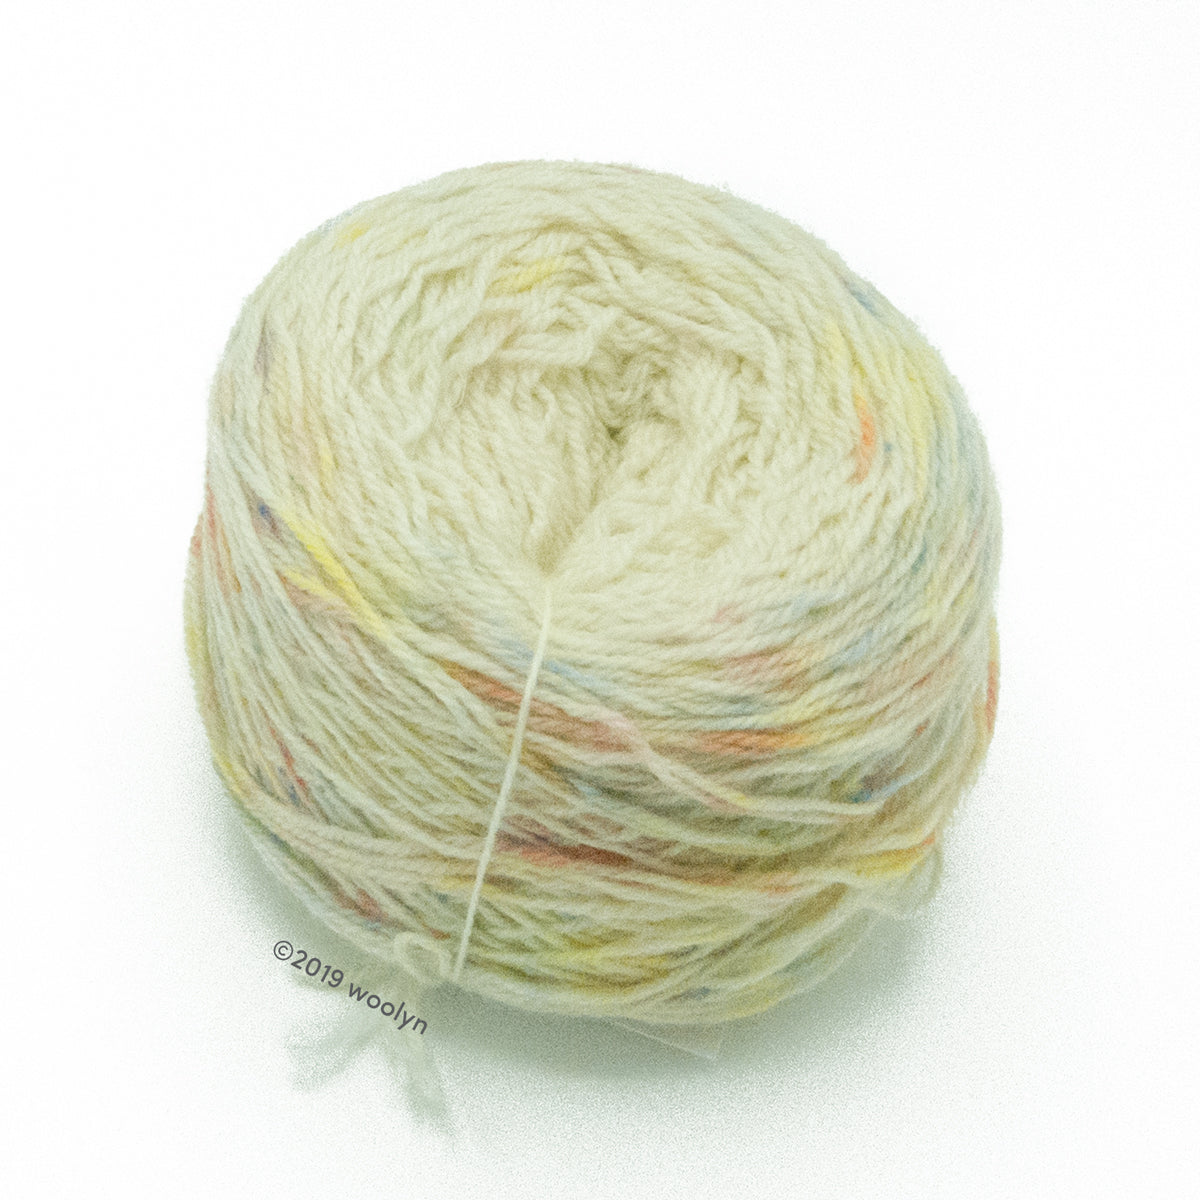 A wound cake of hand dyed fingering weight yarn from Apple Tree Knits..  Yarn is a gradient from white to pastel speckles.